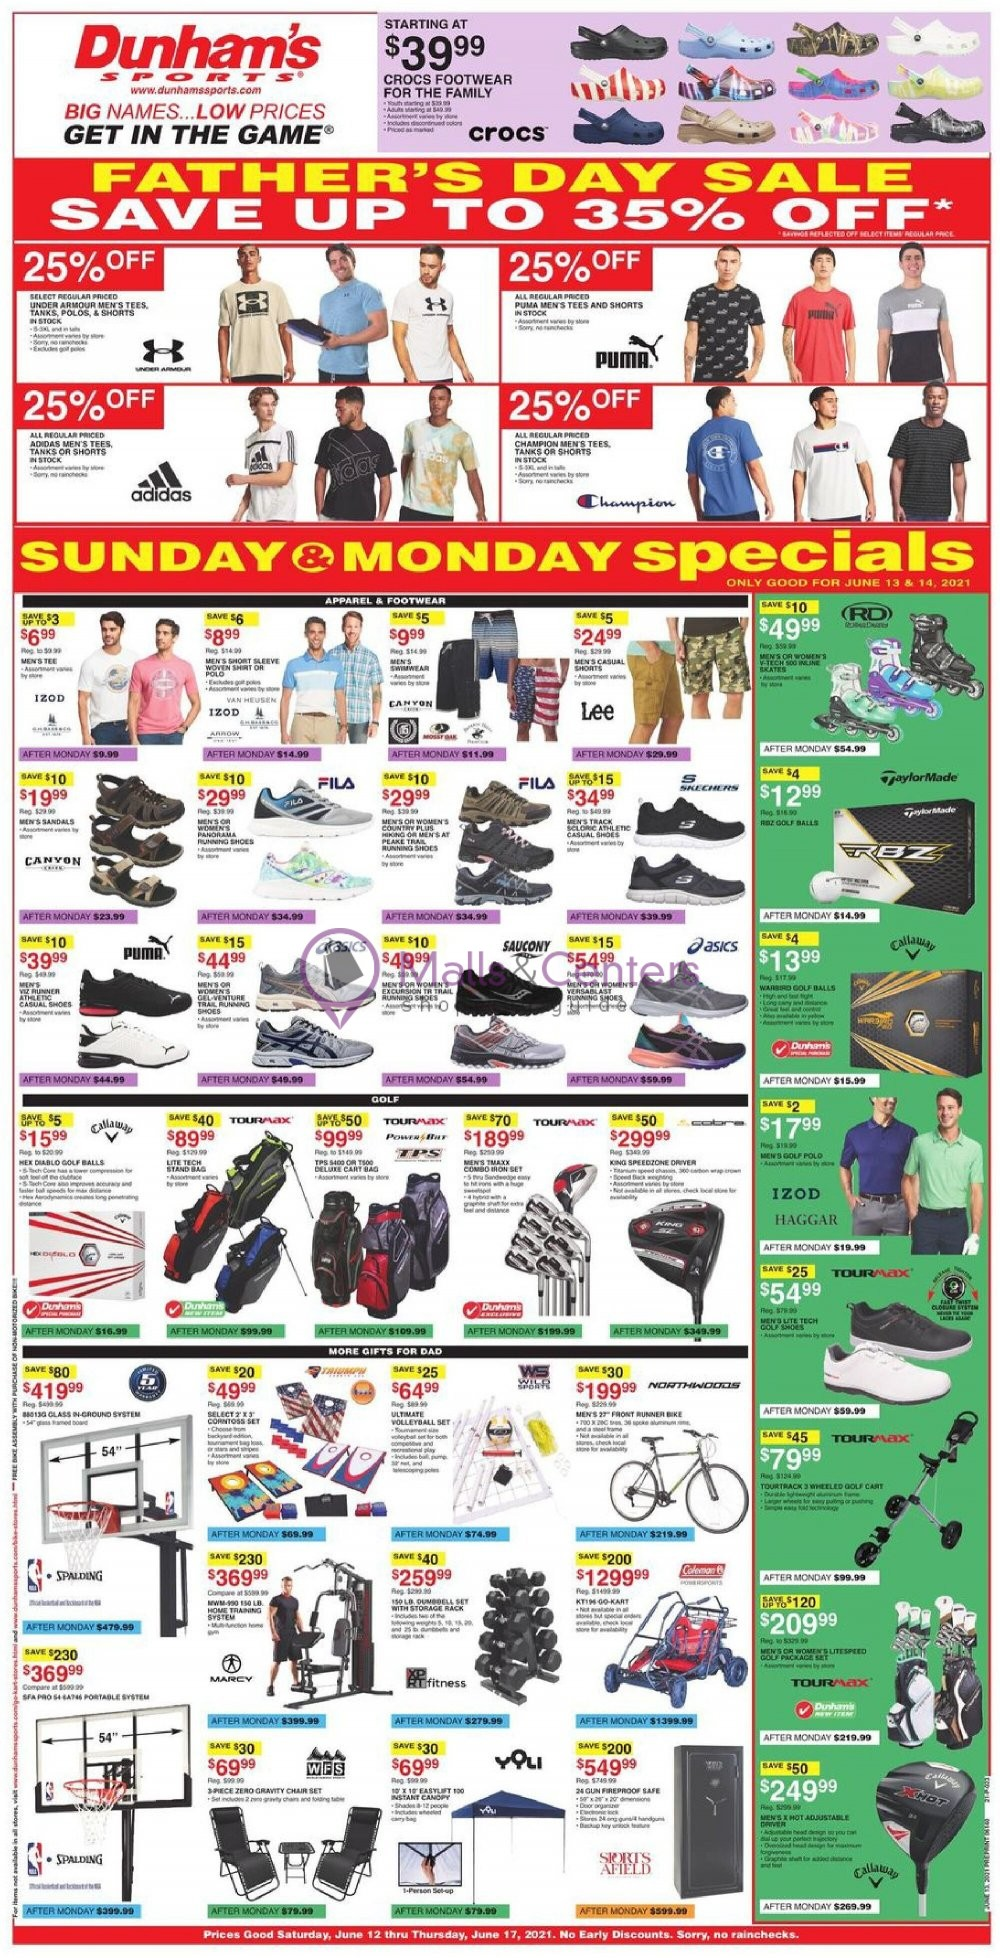 weekly ads Dunham's Sports - page 1 - mallscenters.com